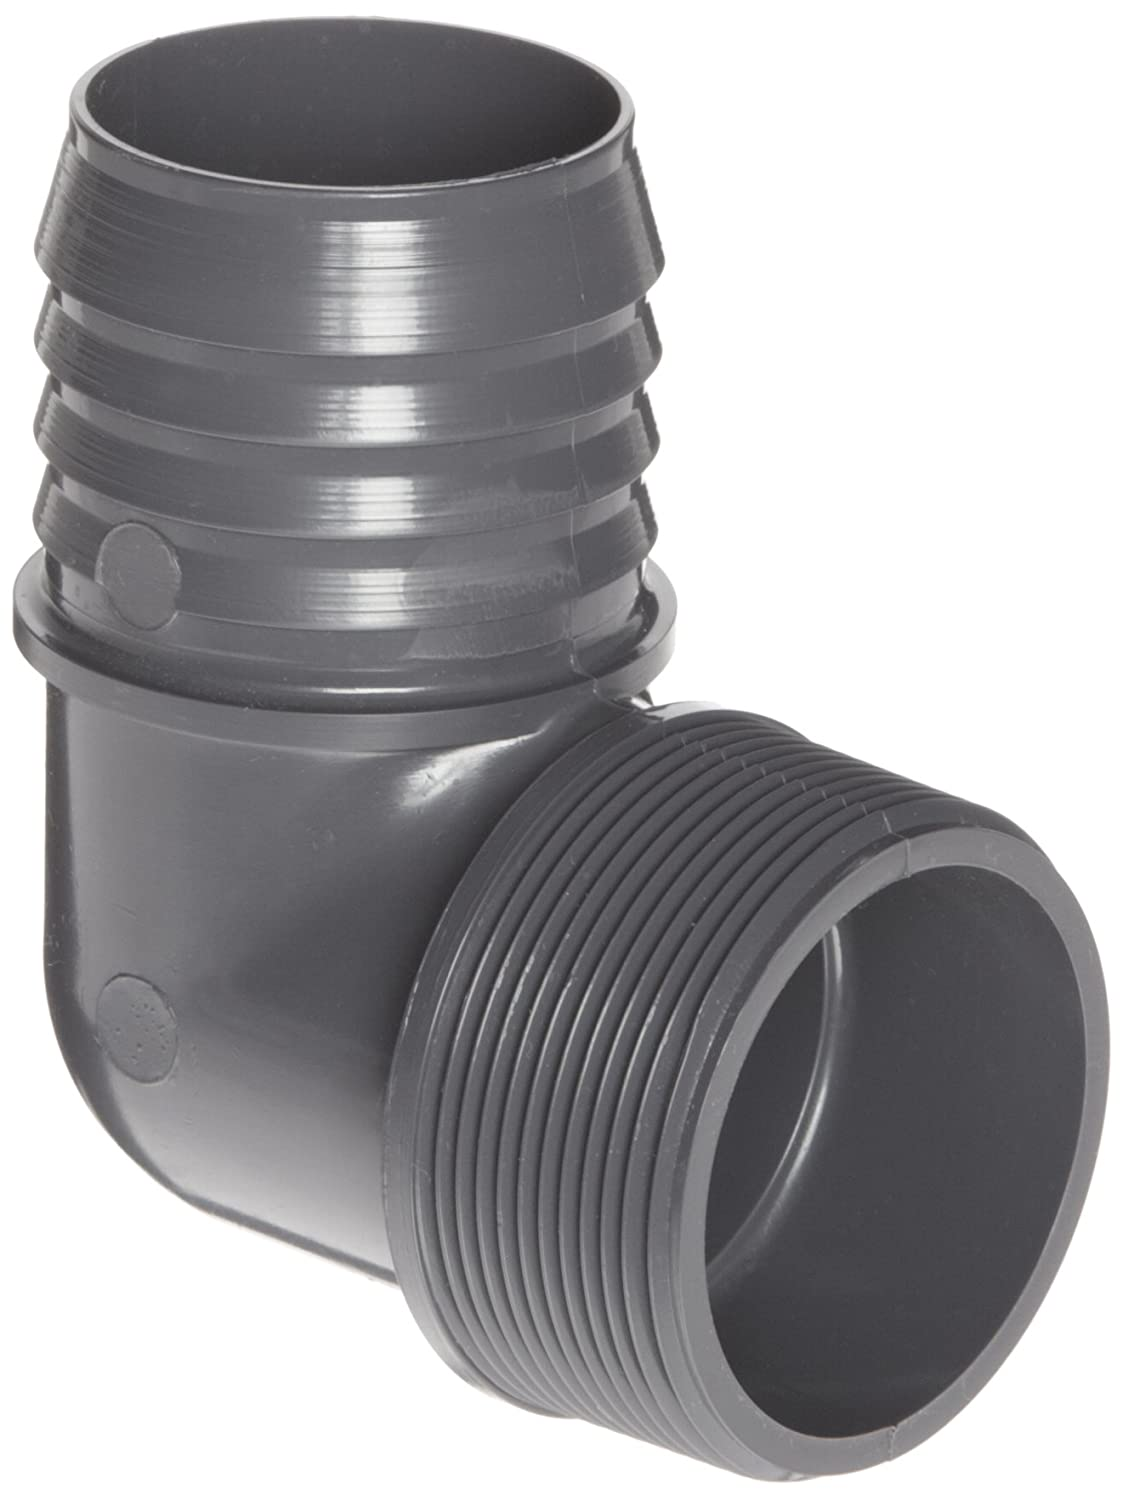 "Spears 1413 Series PVC Tube Fitting, 90 Degree Elbow, Schedule 40, Gray, 1/2"" Barbed x NPT Male"